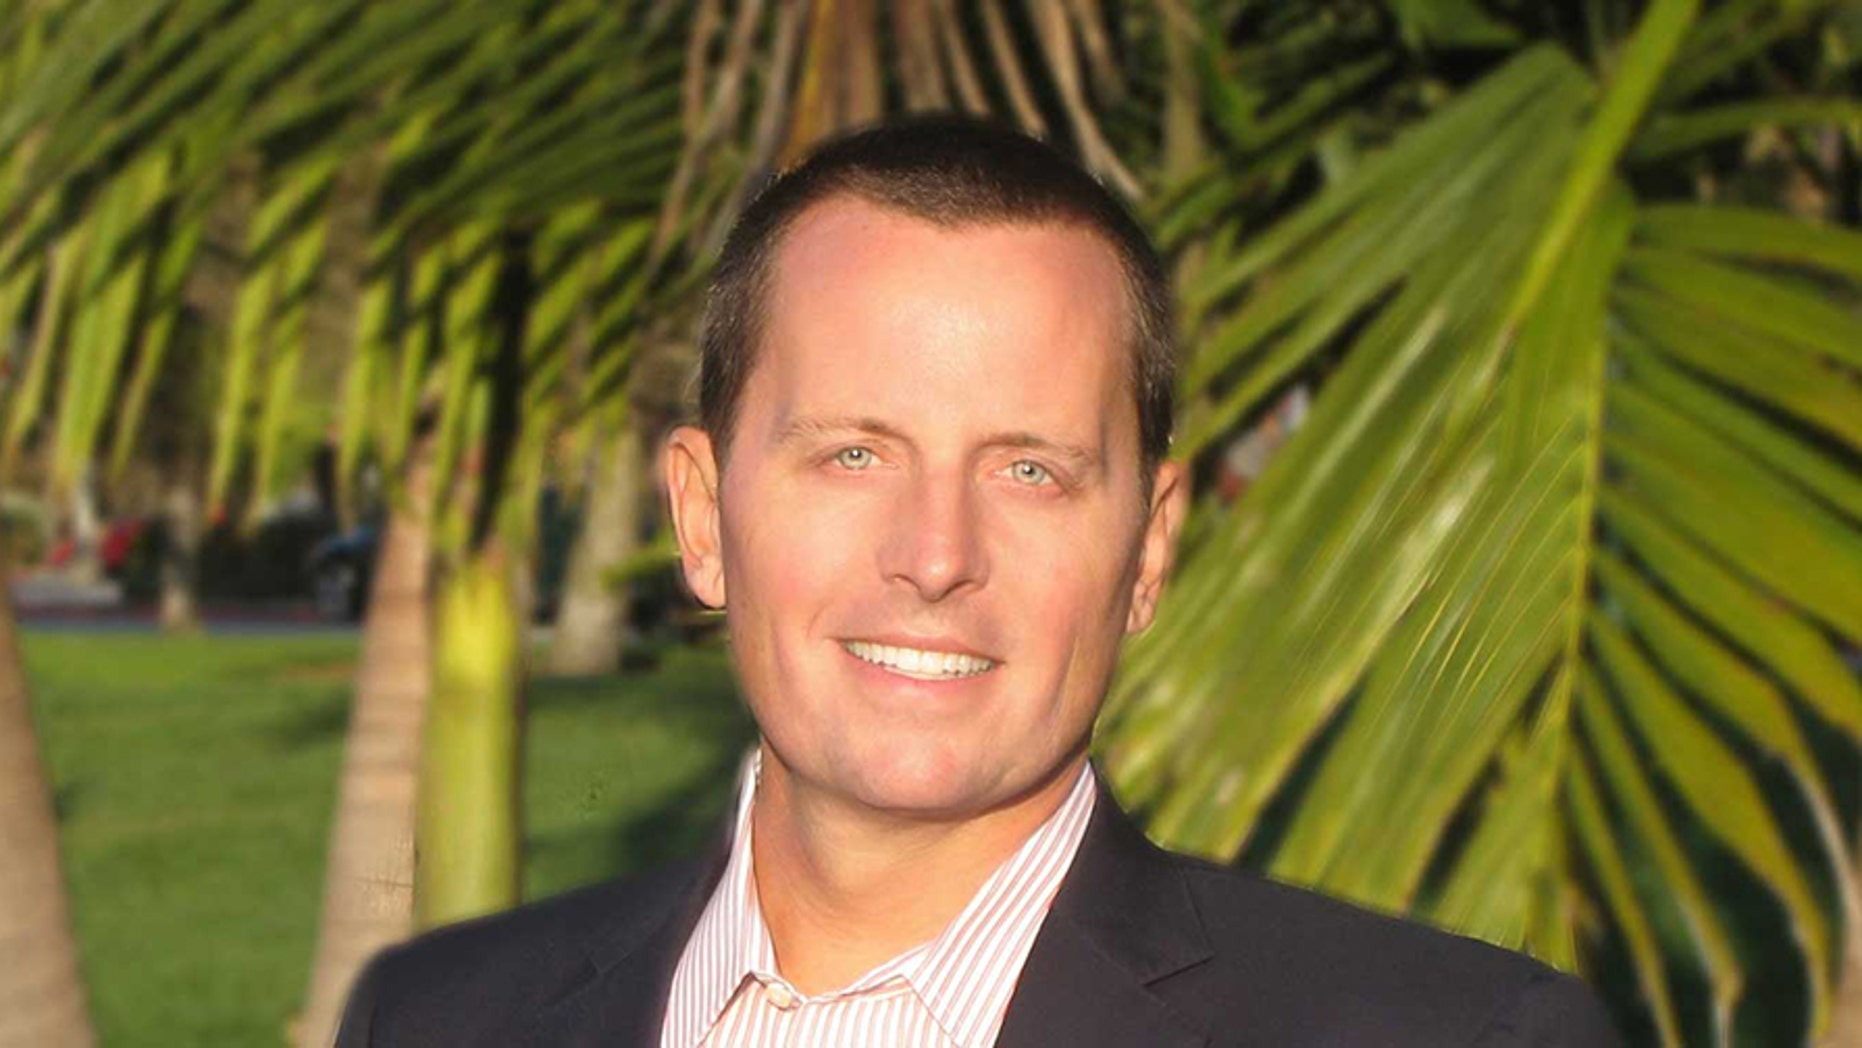 Richard Grenell was nominated by Trump to be ambassador to Germany last year, but remains among those held up in the process.